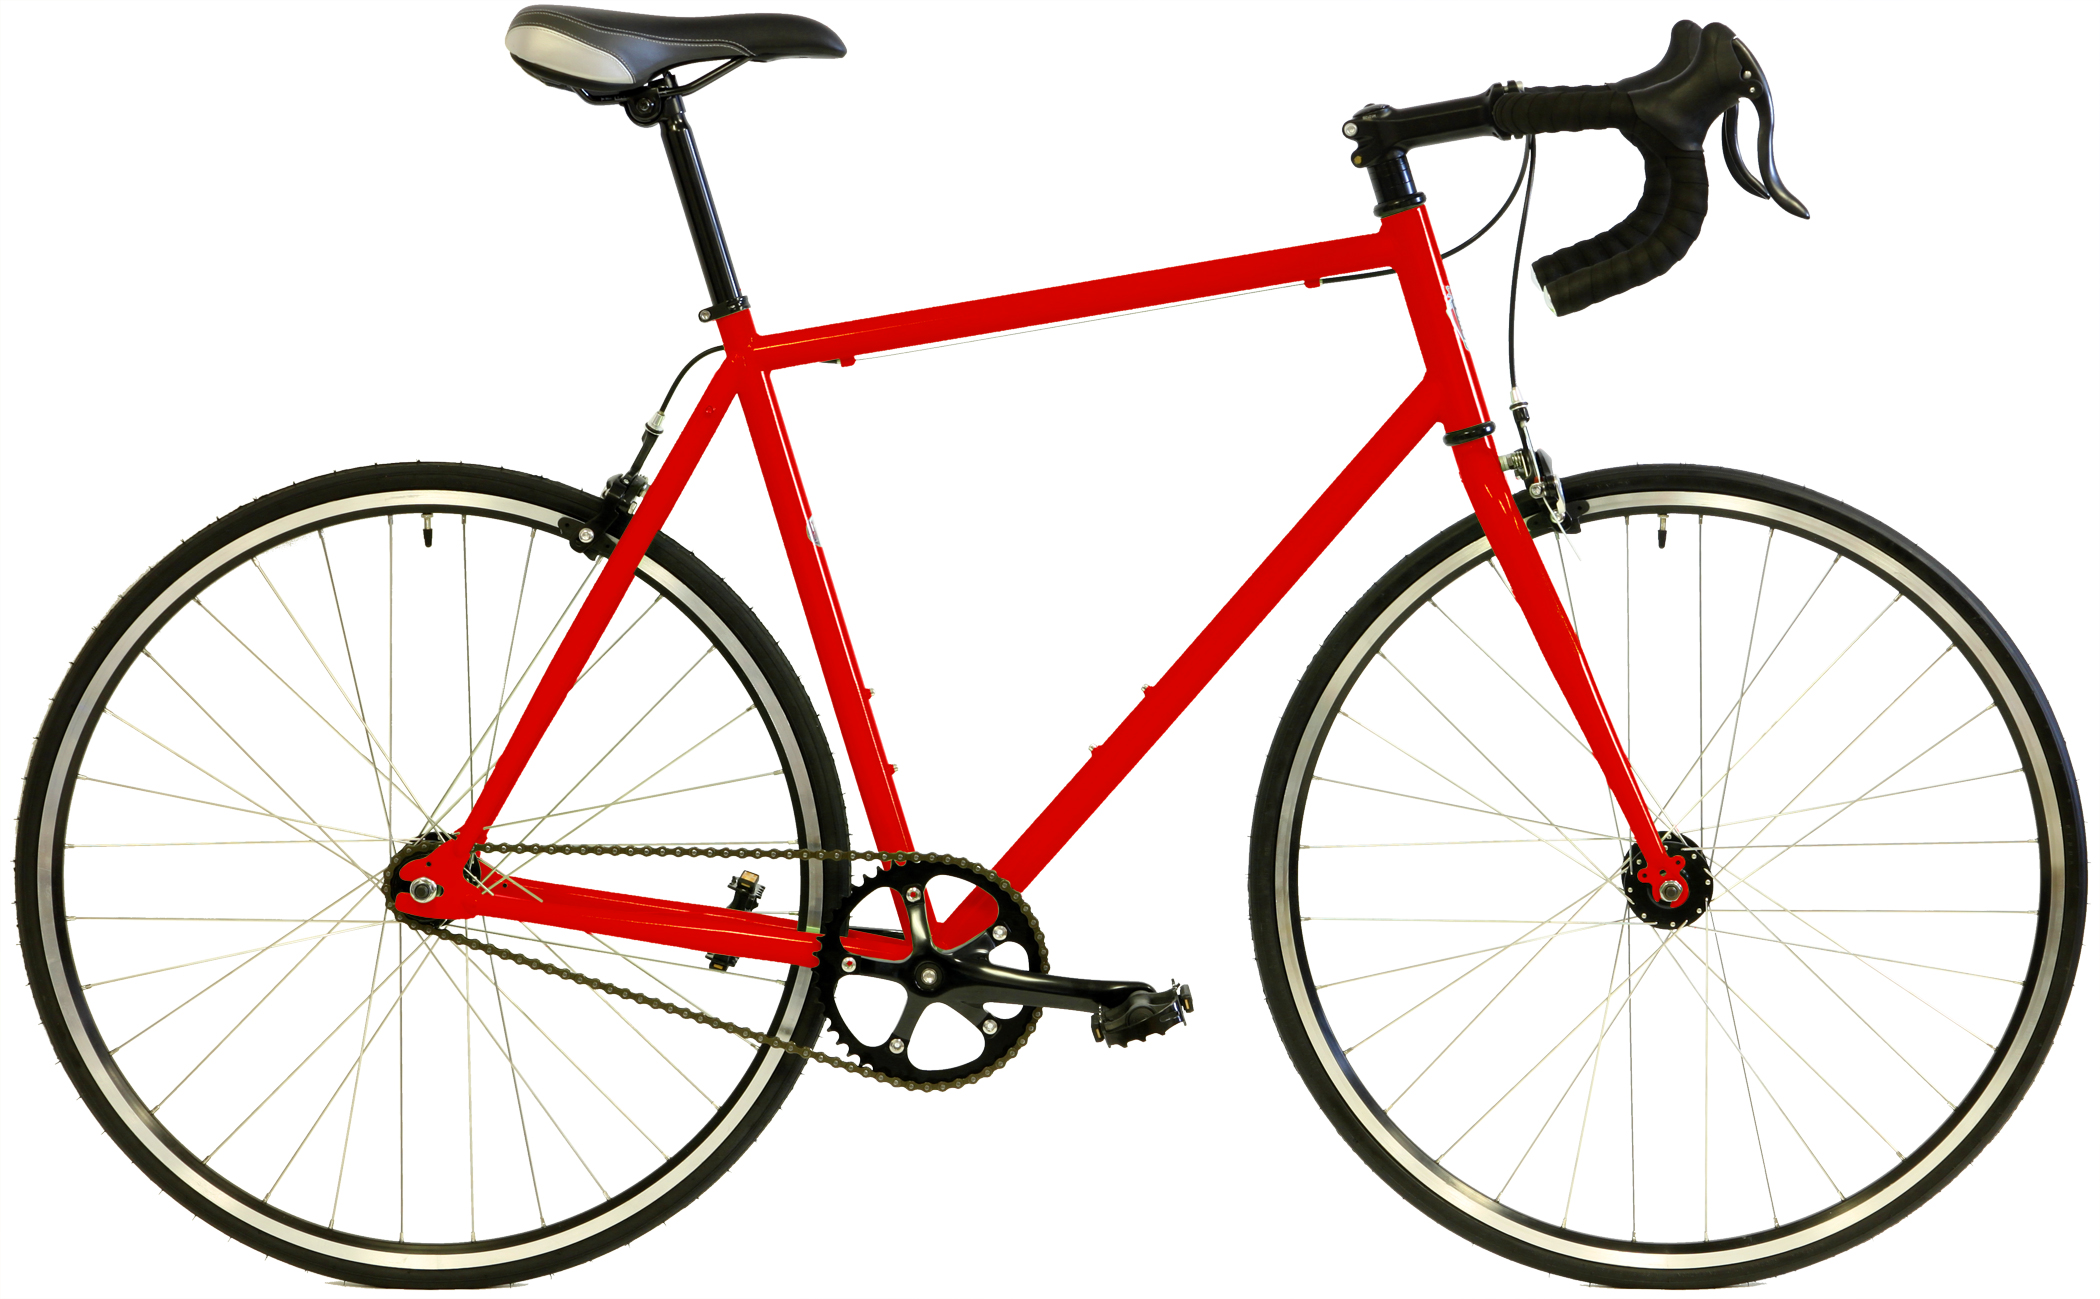 SST - SINGLE SPEED CHROMOLY ROAD BIKE